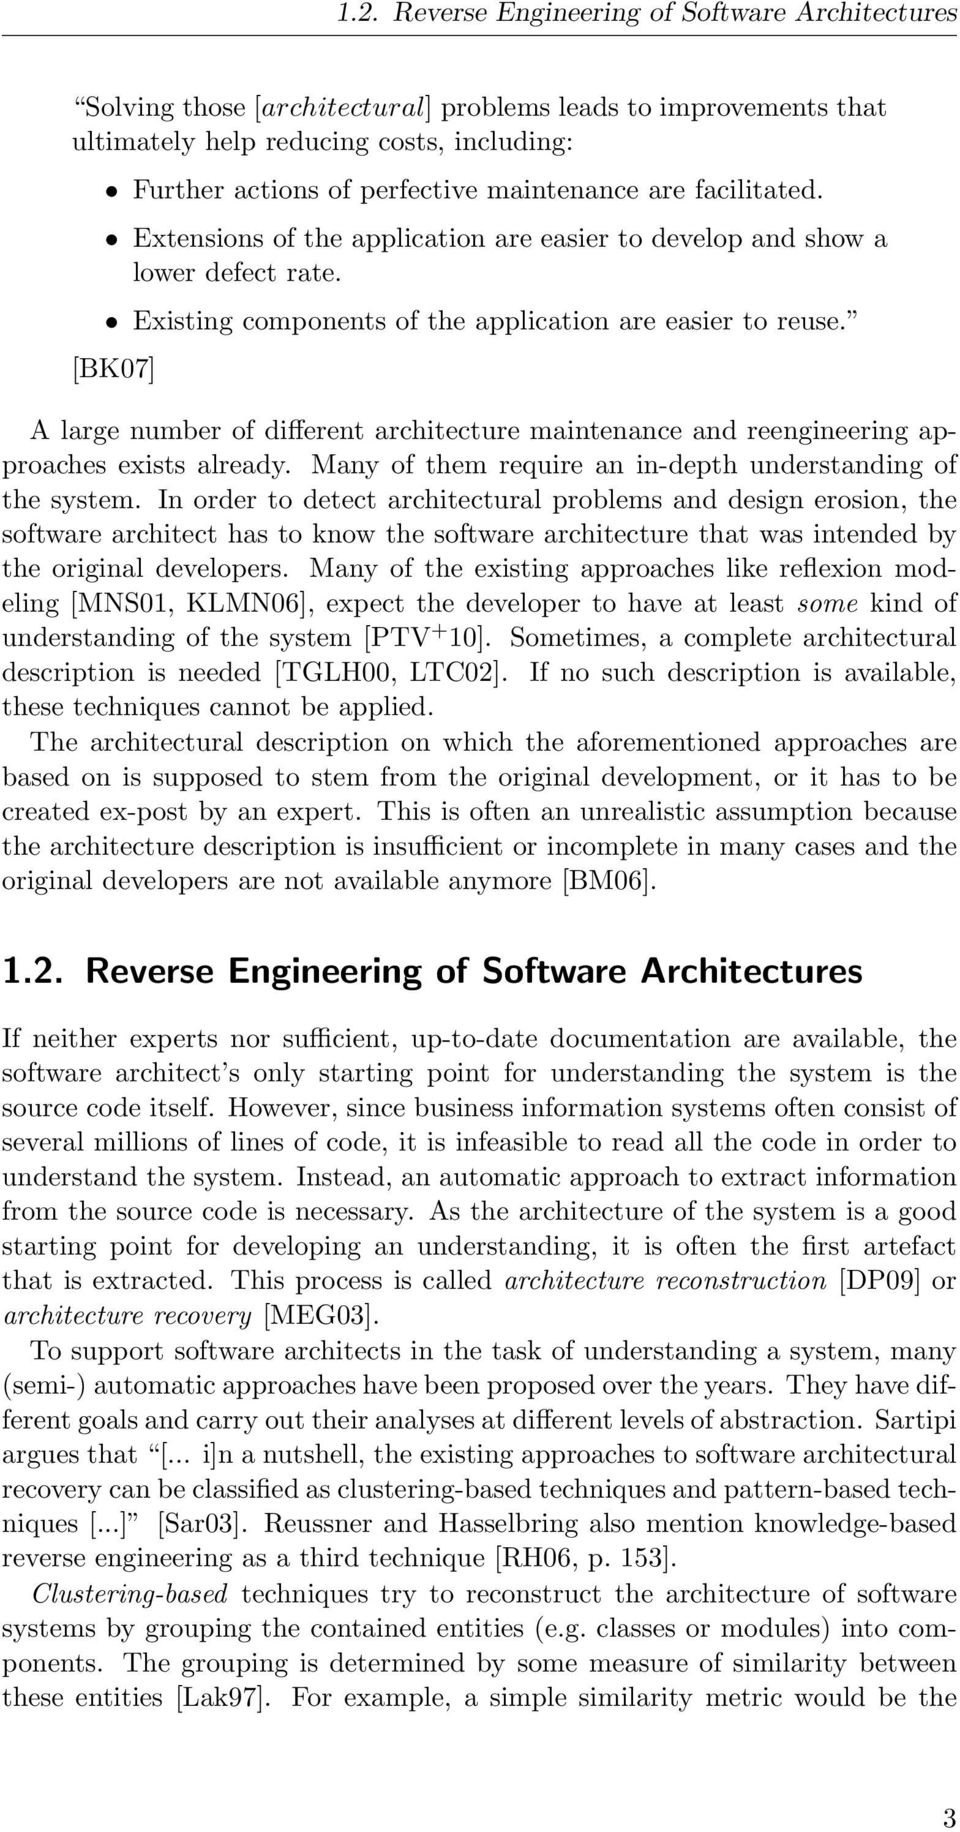 [BK07] A large number of different architecture maintenance and reengineering approaches exists already. Many of them require an in-depth understanding of the system.